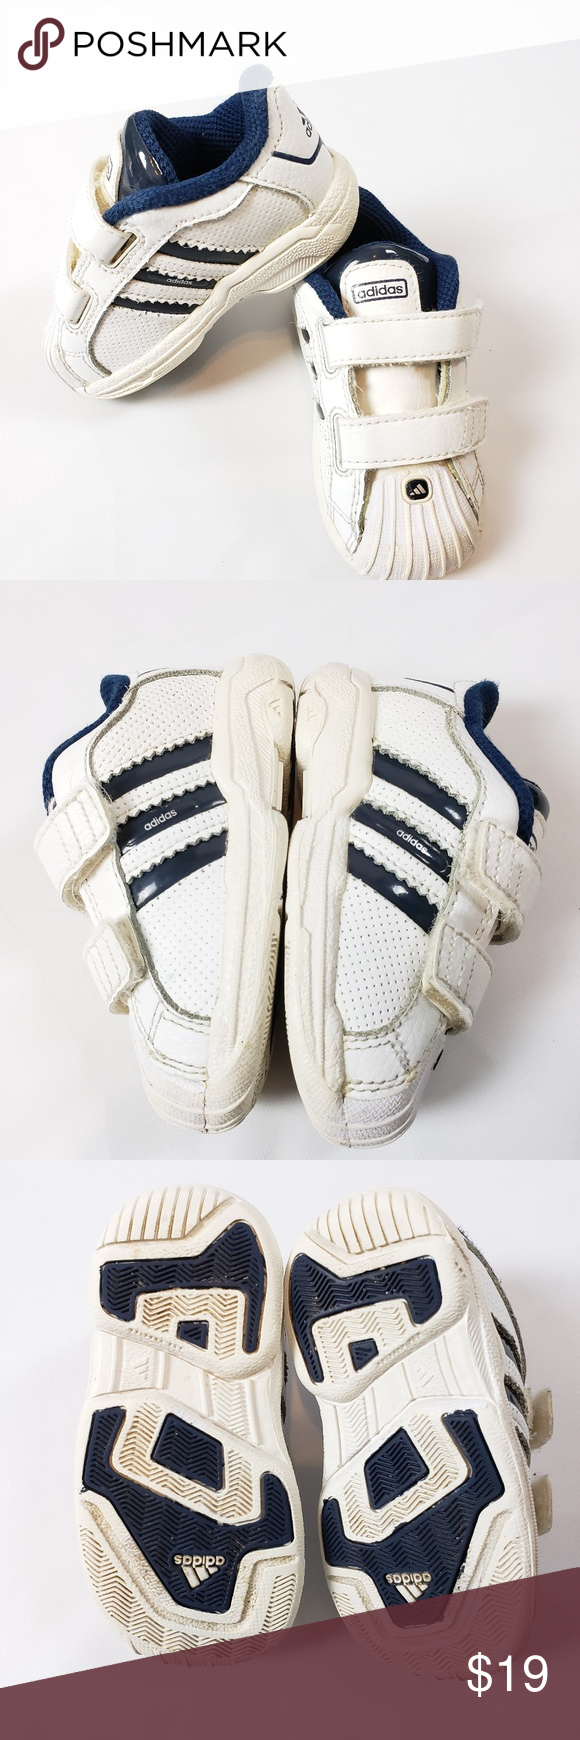 Infant Blue White Classic Unisex Sneakers